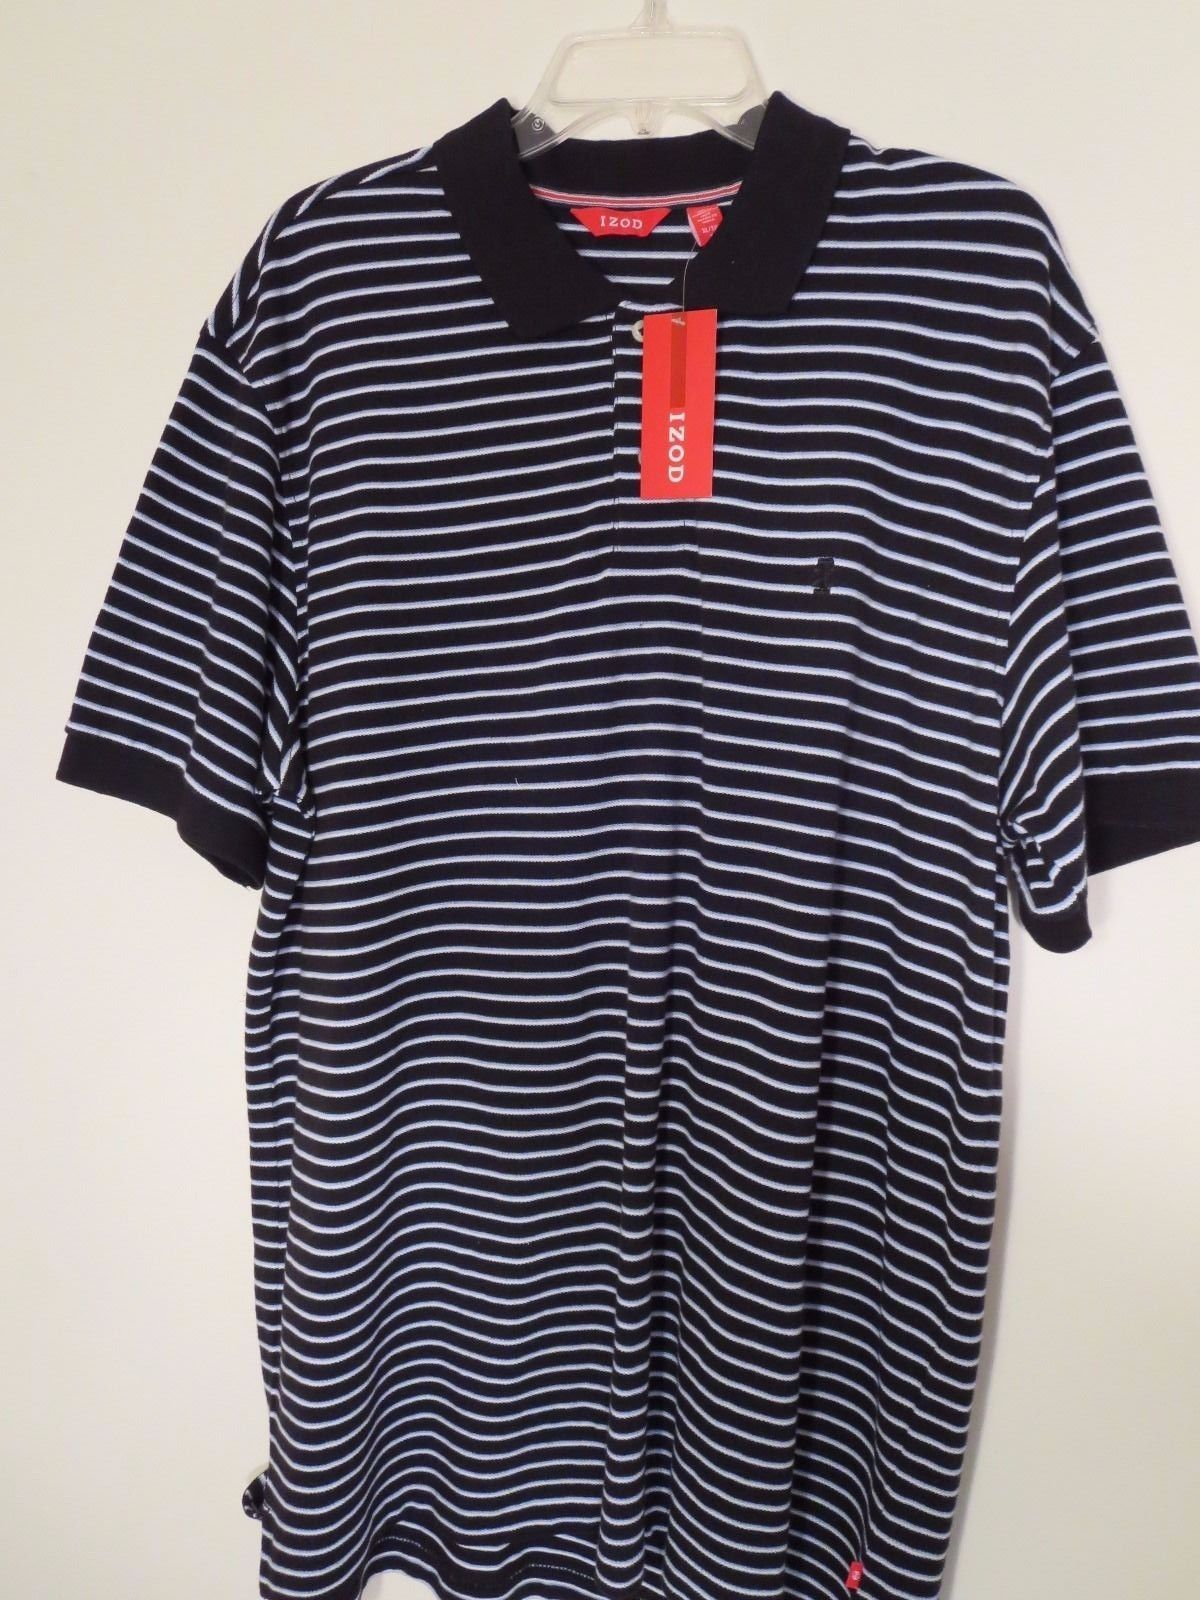 c83ff7ee Izod Men's Size L Striped S/S Polo Shirt and 50 similar items. S l1600